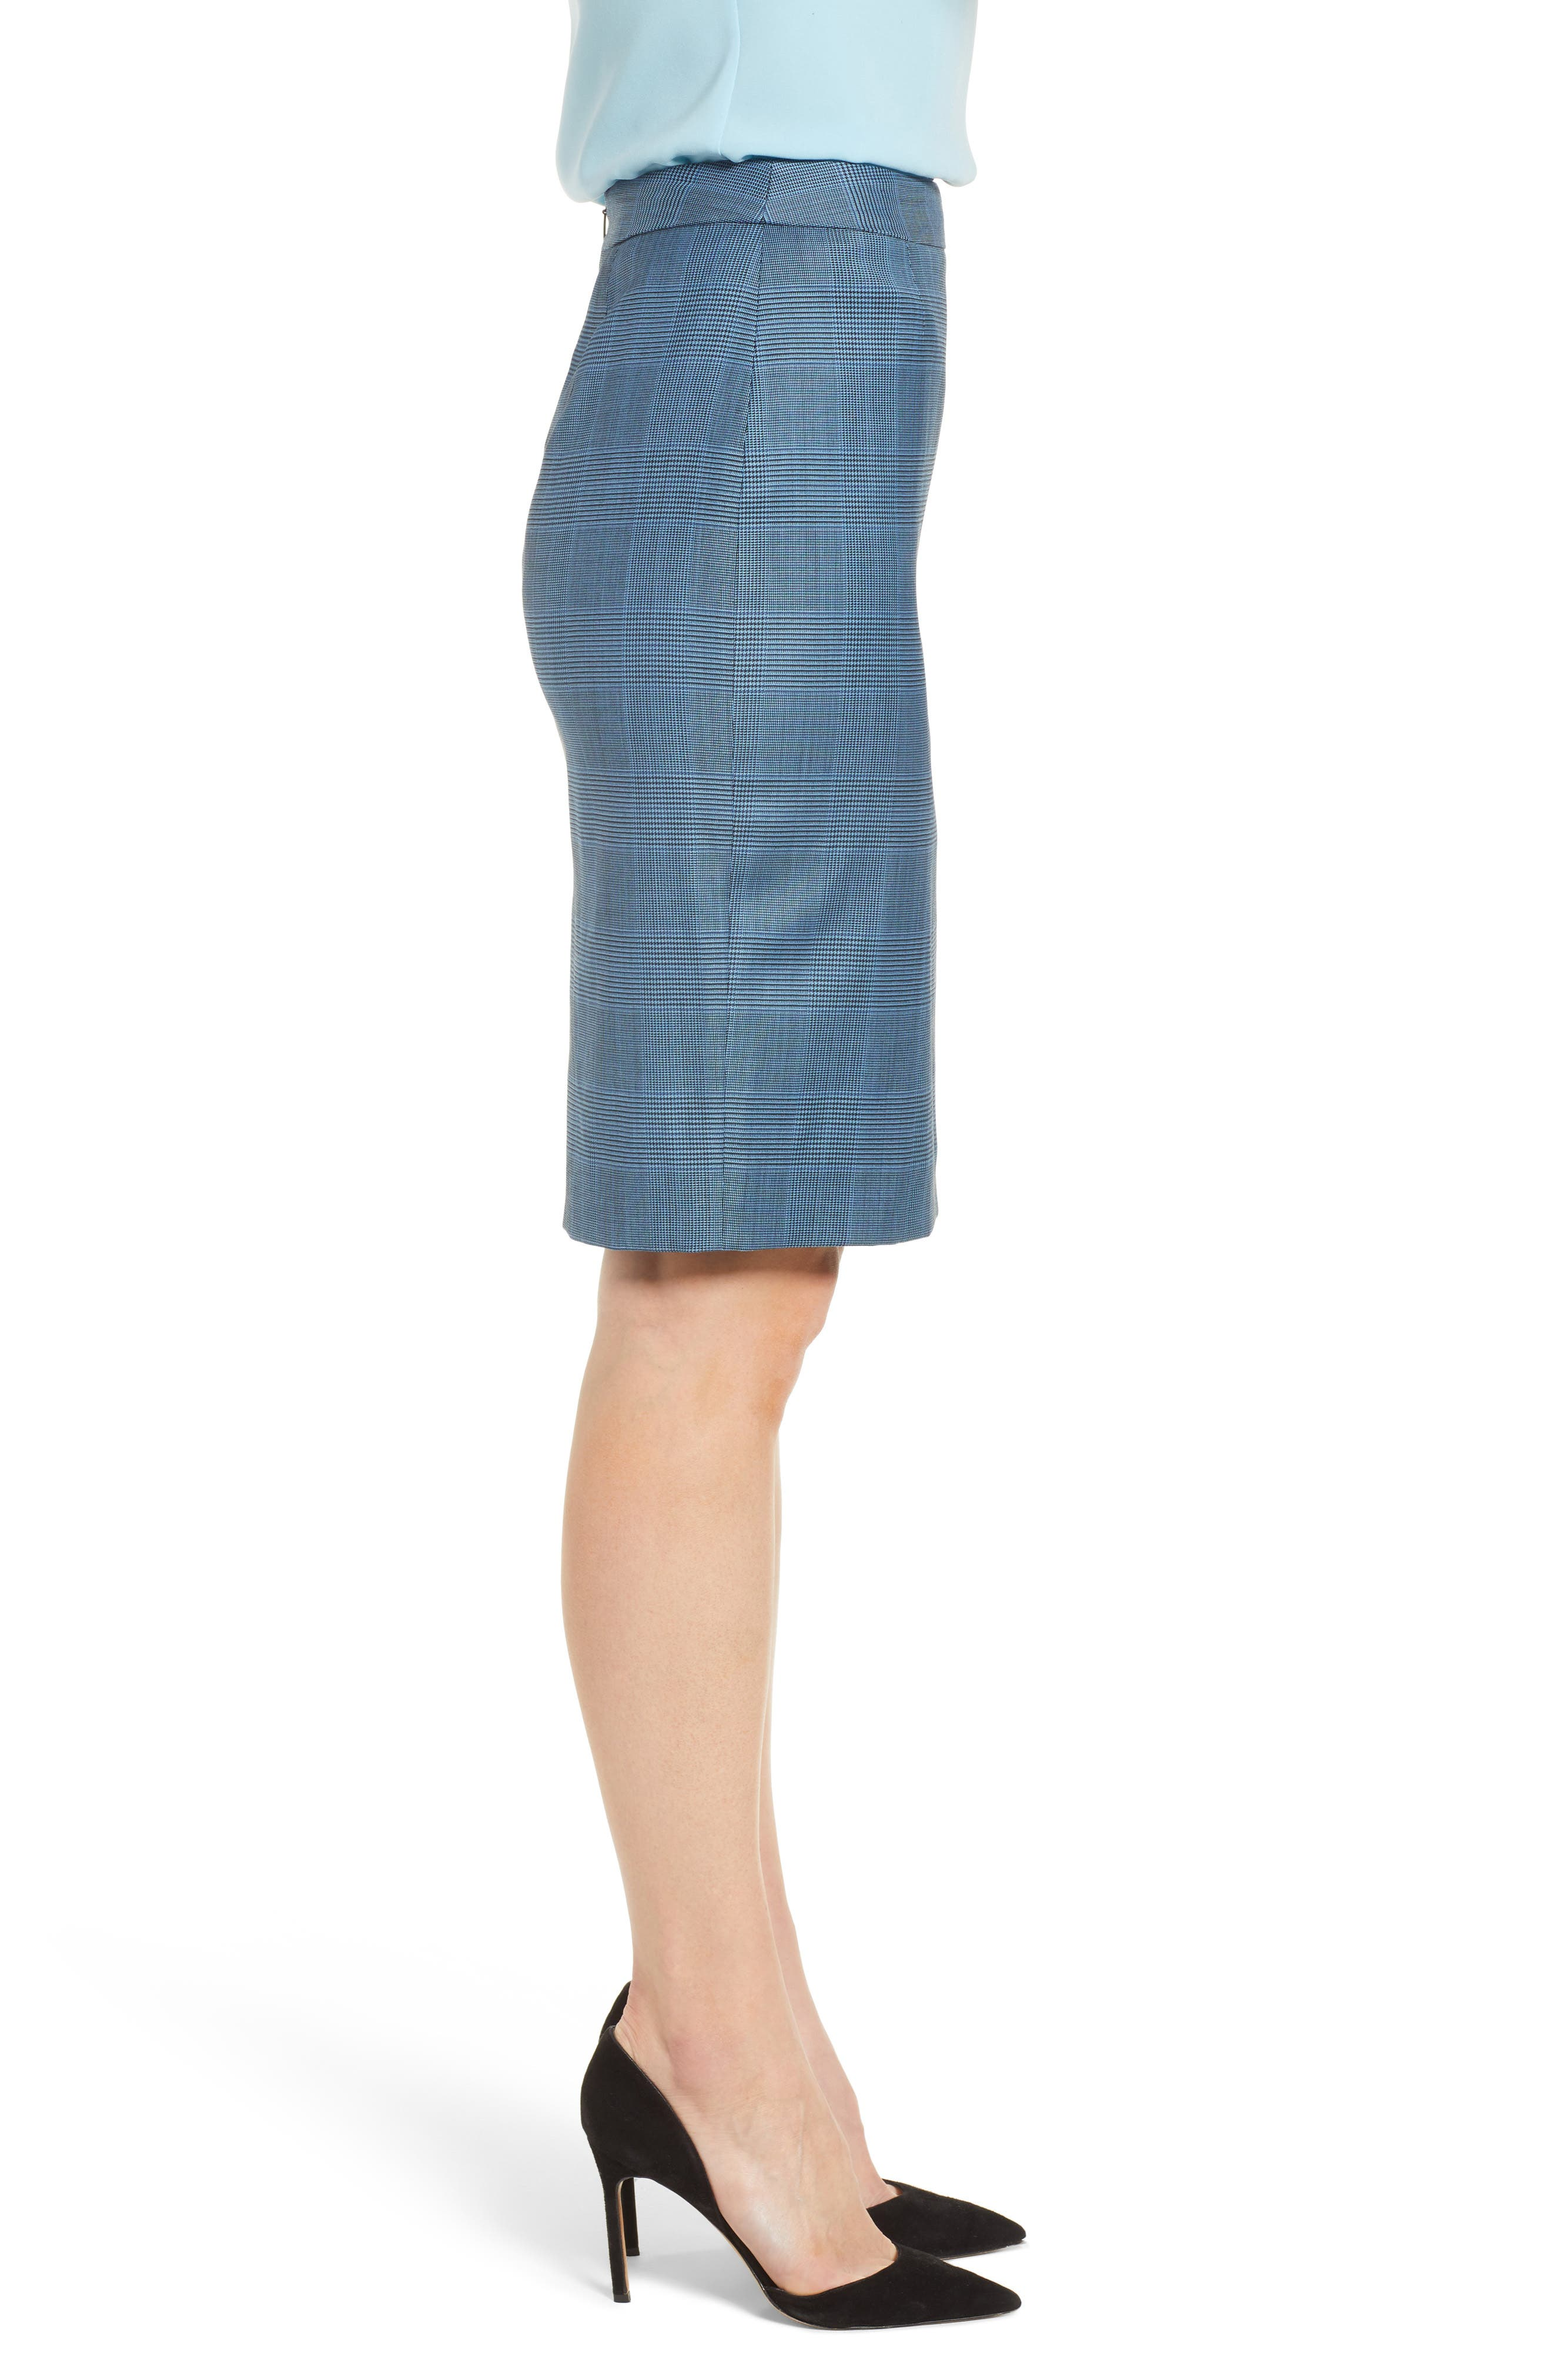 Vimena Glencheck Stretch Wool Pencil Skirt,                             Alternate thumbnail 3, color,